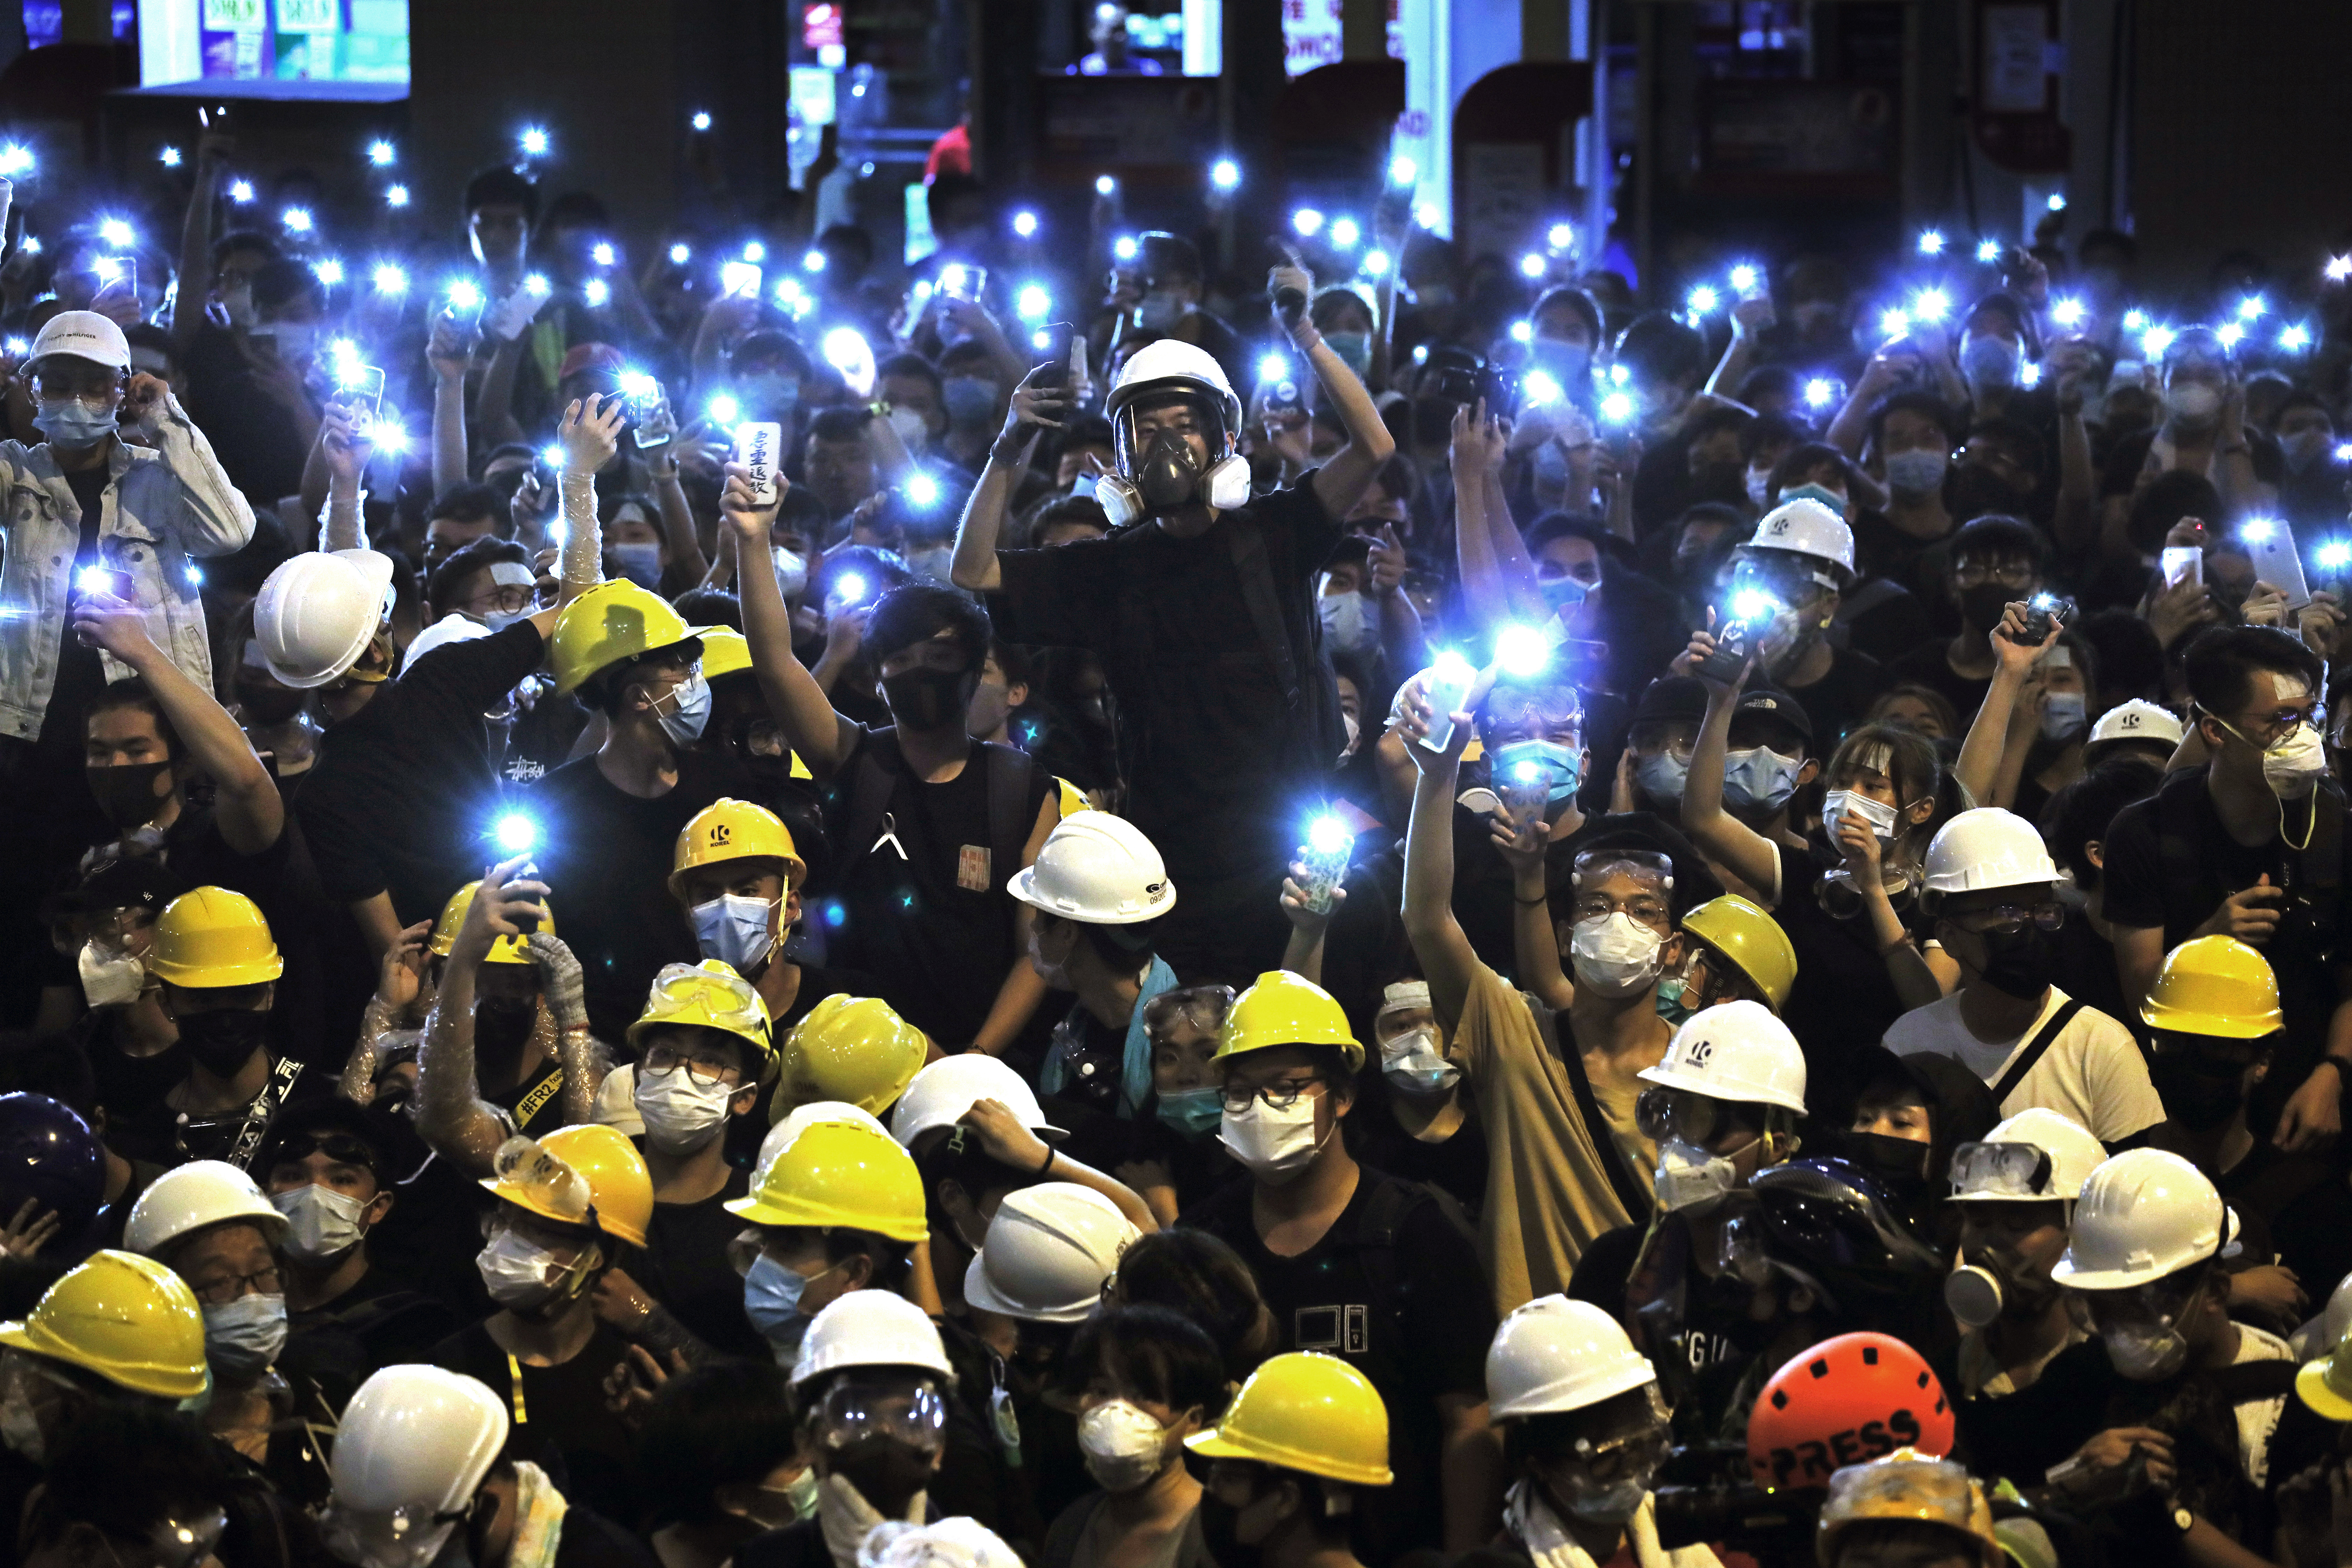 Hand signals and Post-its: The Hong Kong protester playbook